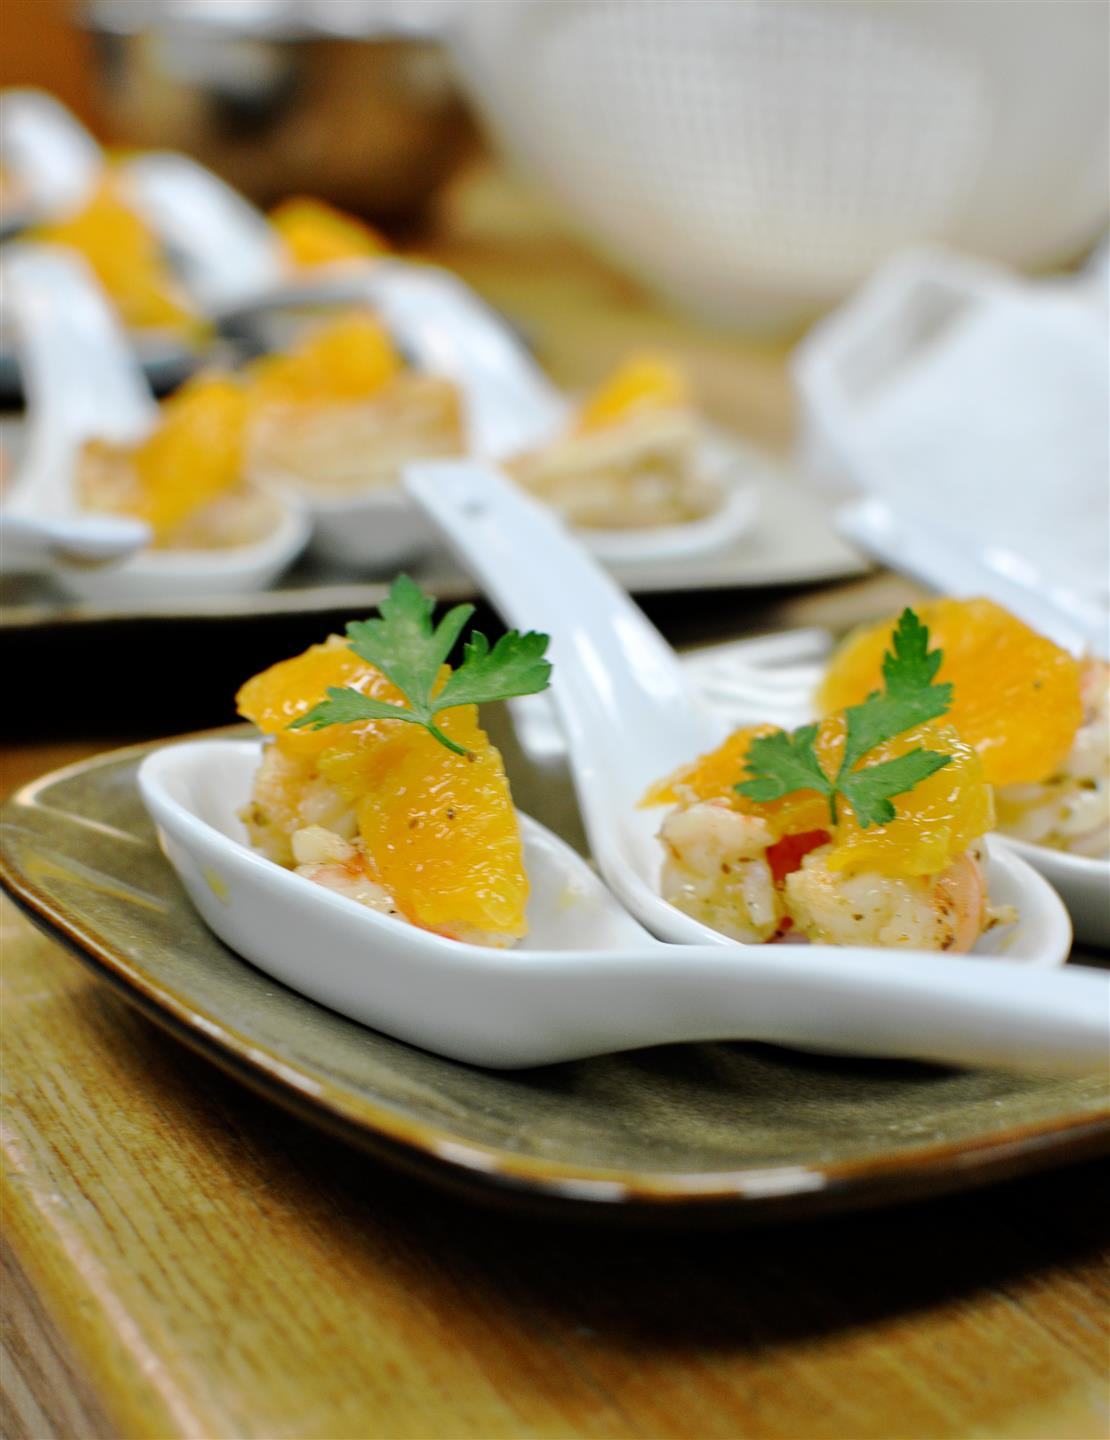 Grilled shrimp topped with mandarin oranges